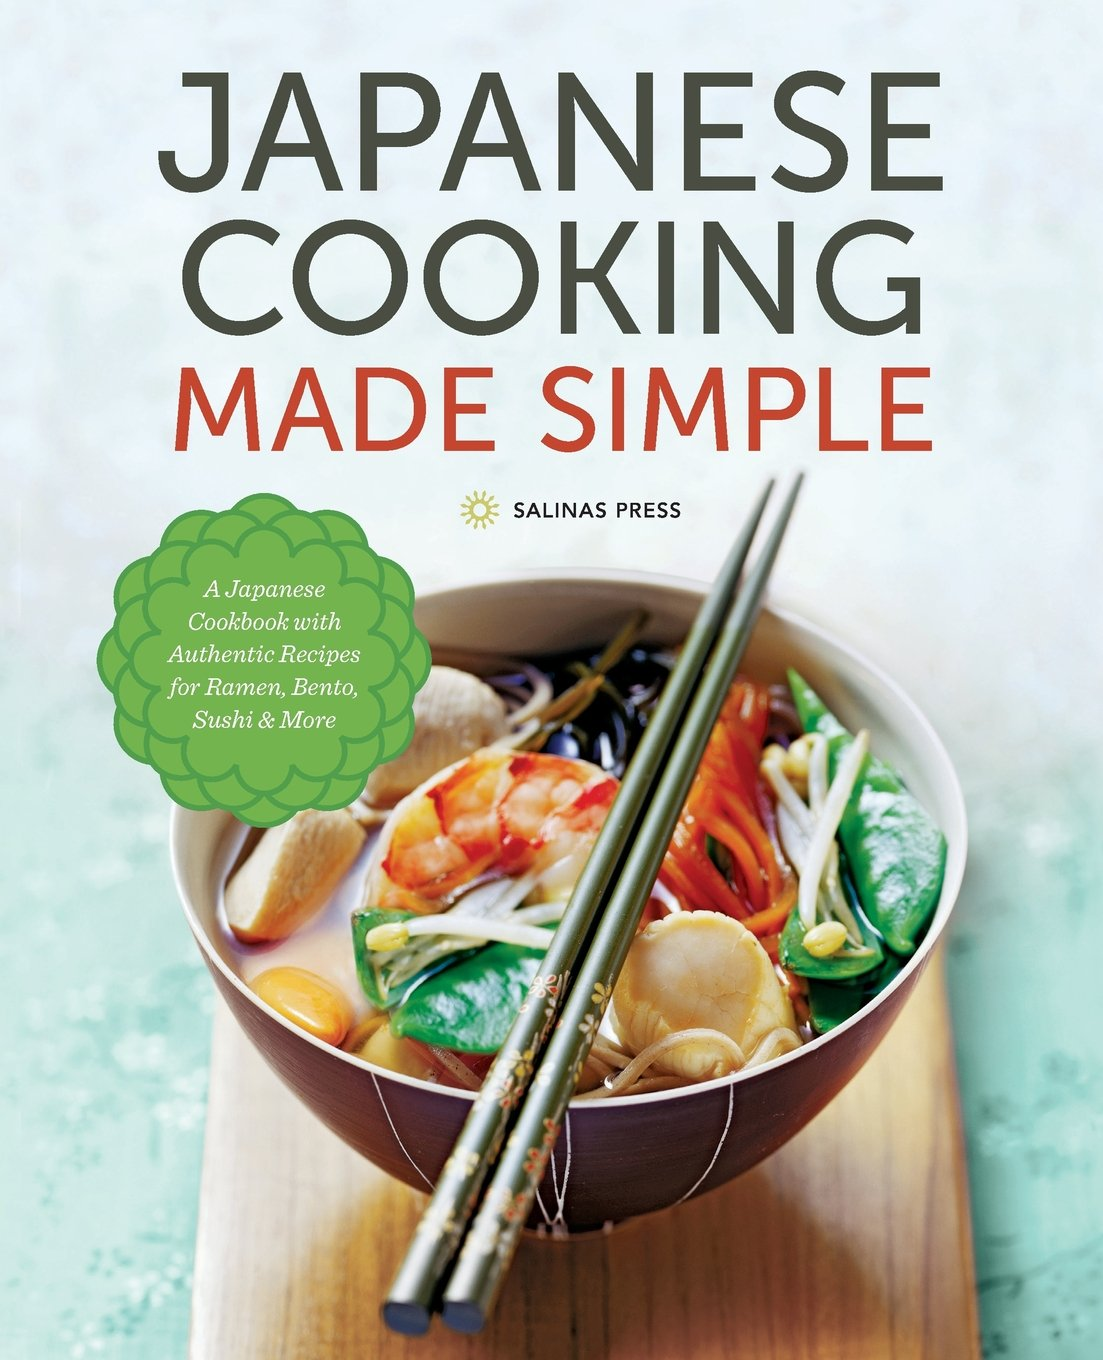 Japanese cooking made simple a japanese cookbook with authentic japanese cooking made simple a japanese cookbook with authentic recipes for ramen bento sushi more salinas press 9781623153922 amazon books forumfinder Gallery